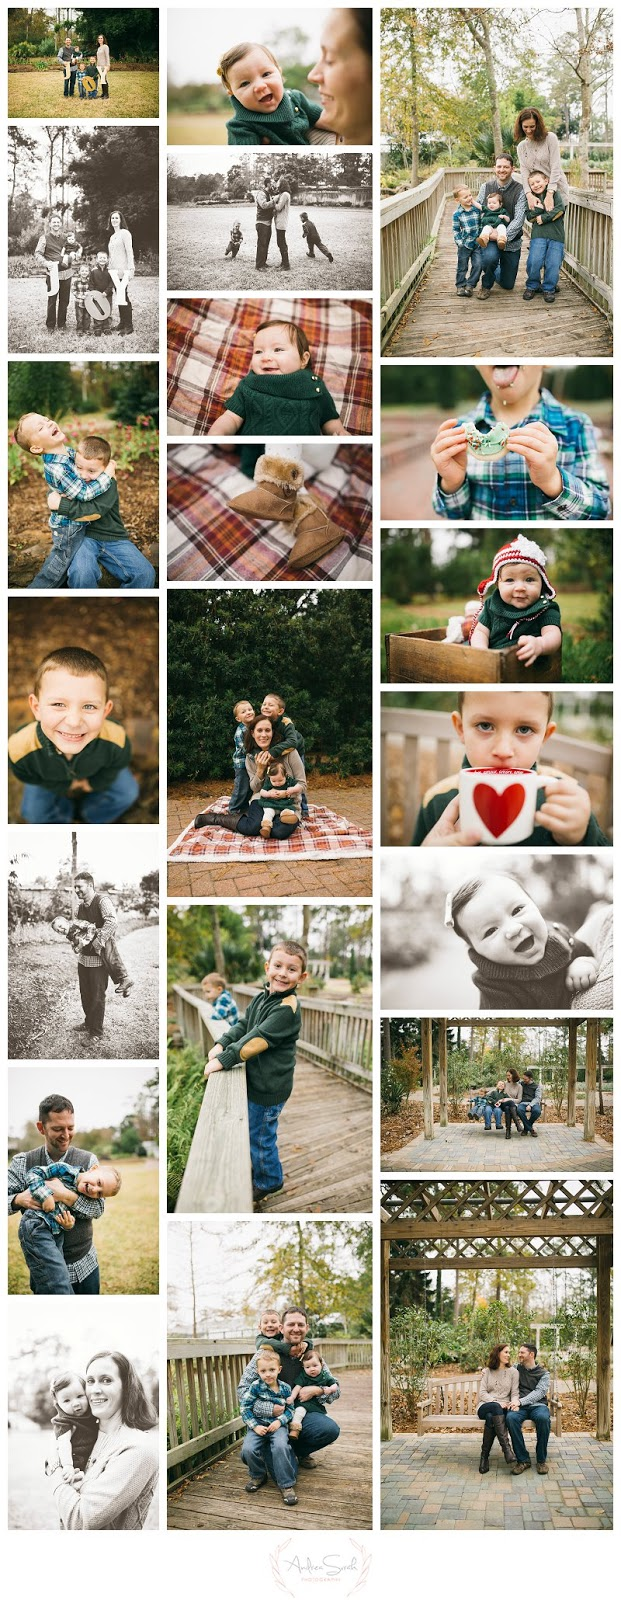 Outdoor Family Photography The Woodlands